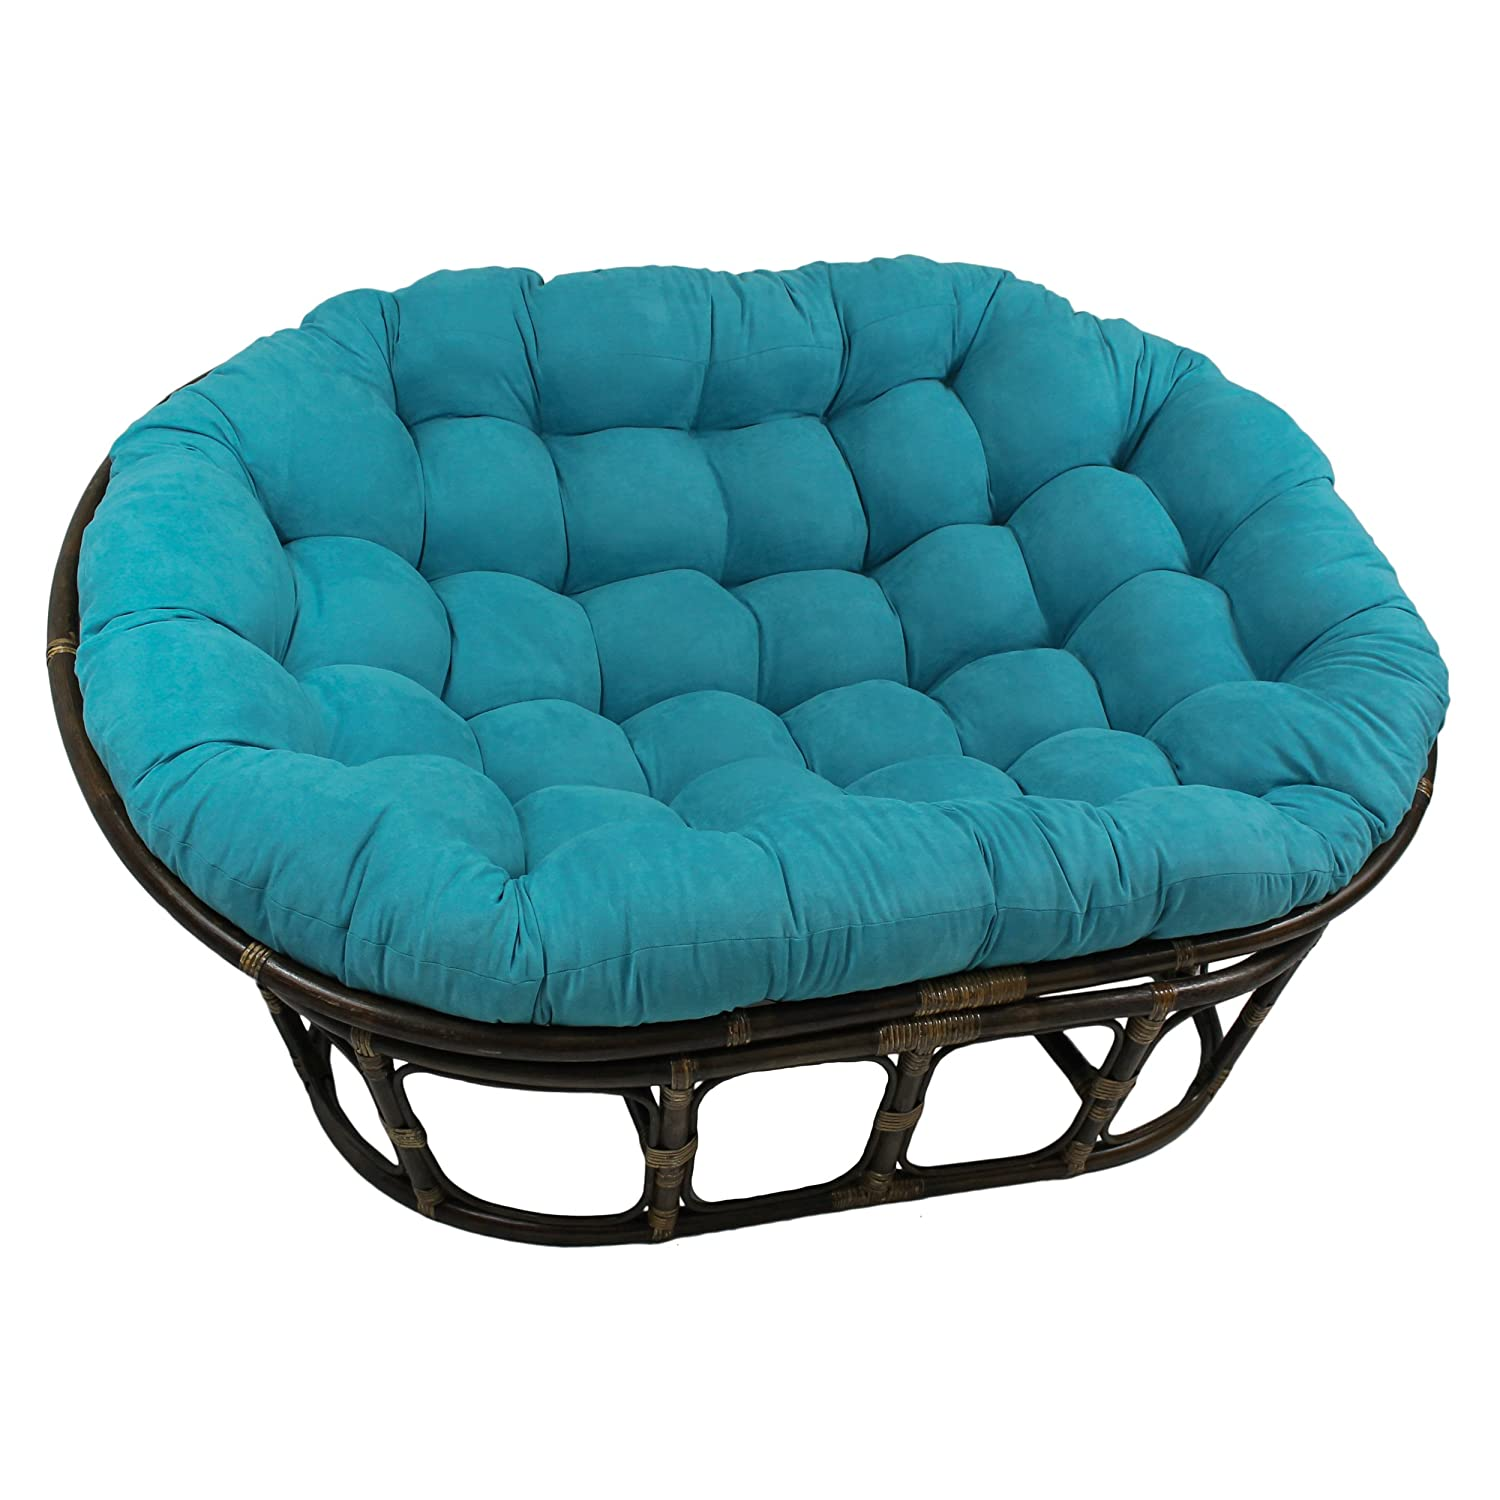 Astonishing Blazing Needles Solid Microsuede Double Papasan Chair Cushion 48 X 6 X 65 Aqua Blue Onthecornerstone Fun Painted Chair Ideas Images Onthecornerstoneorg